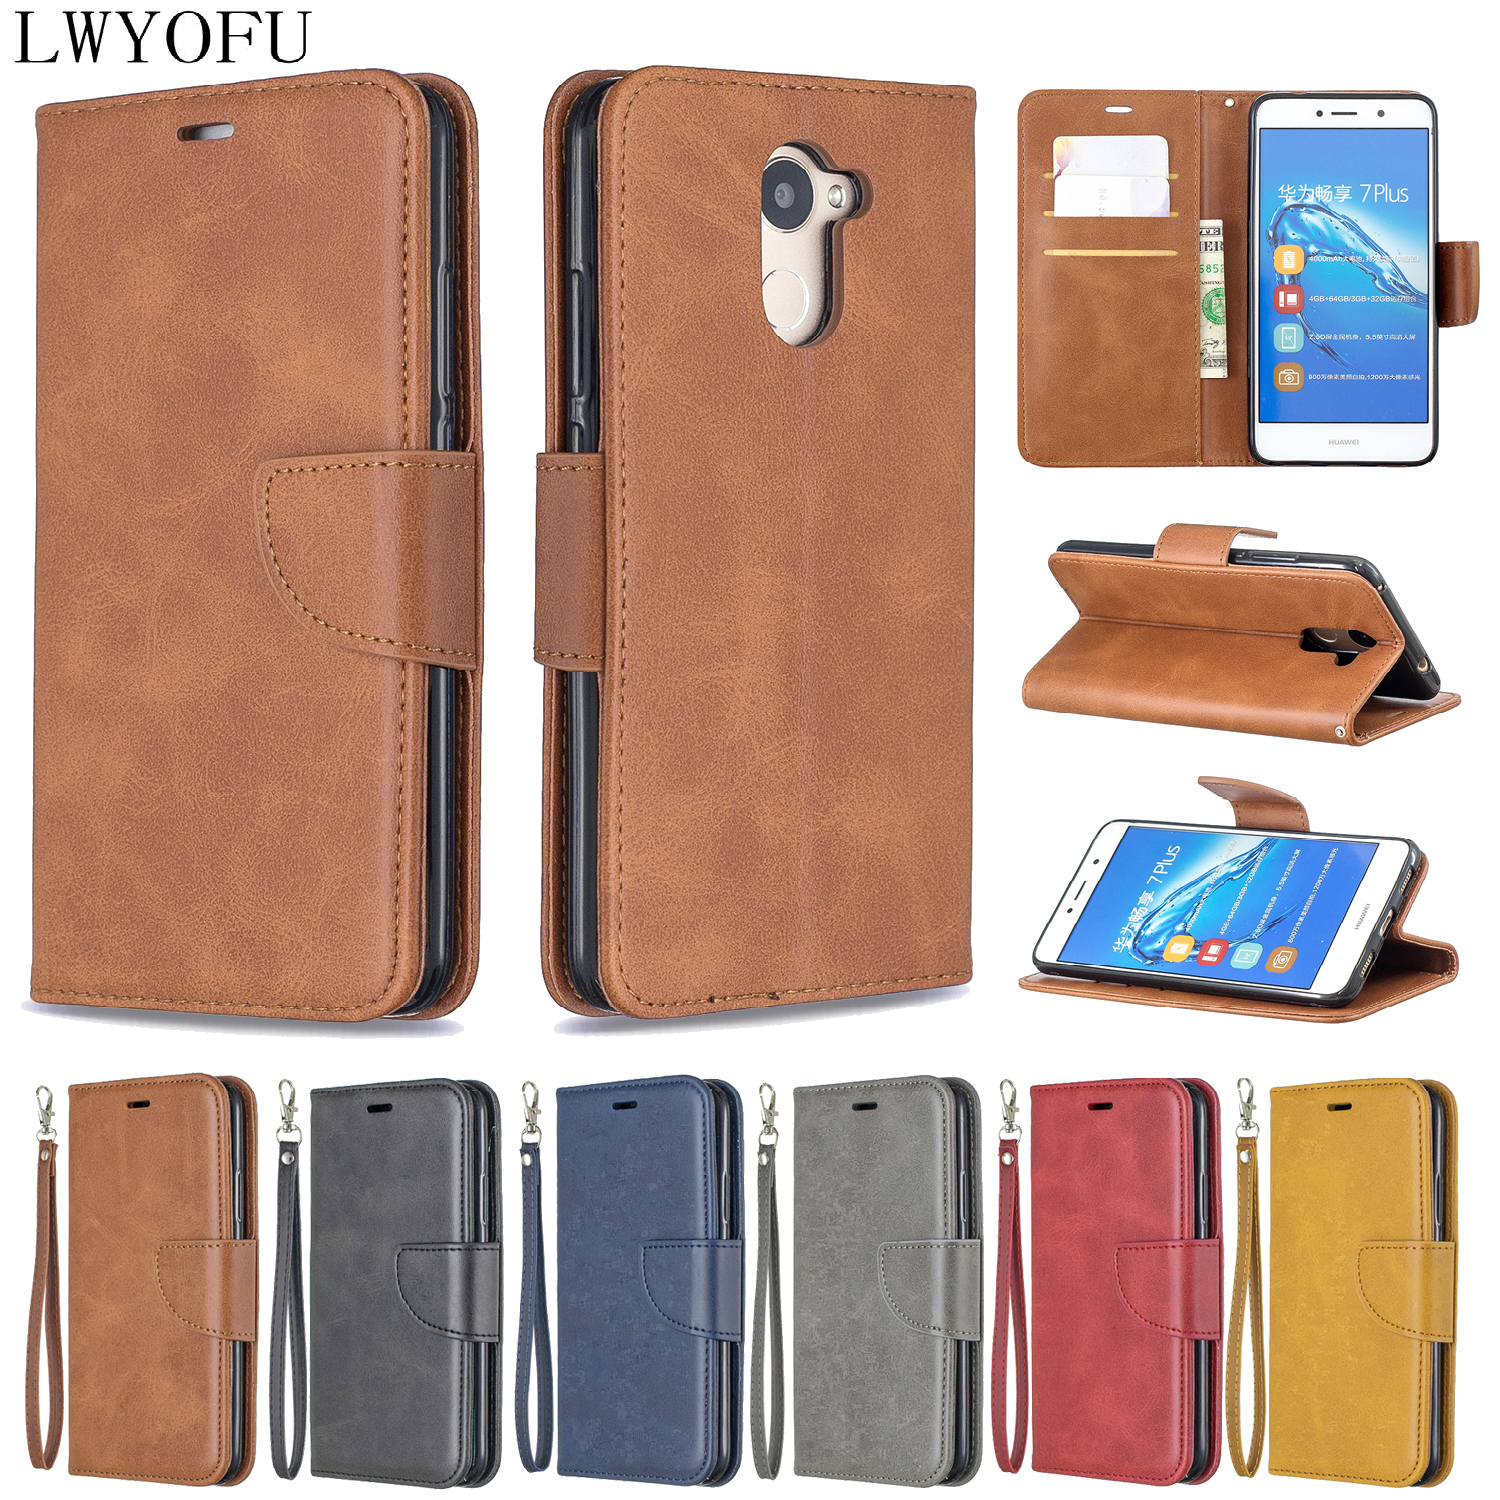 Glory leather flip holster for Huawei Honor 8A 10i 10Lite 8C 7A 7C 7X 6C mat PSMART 2019 mobile phone case